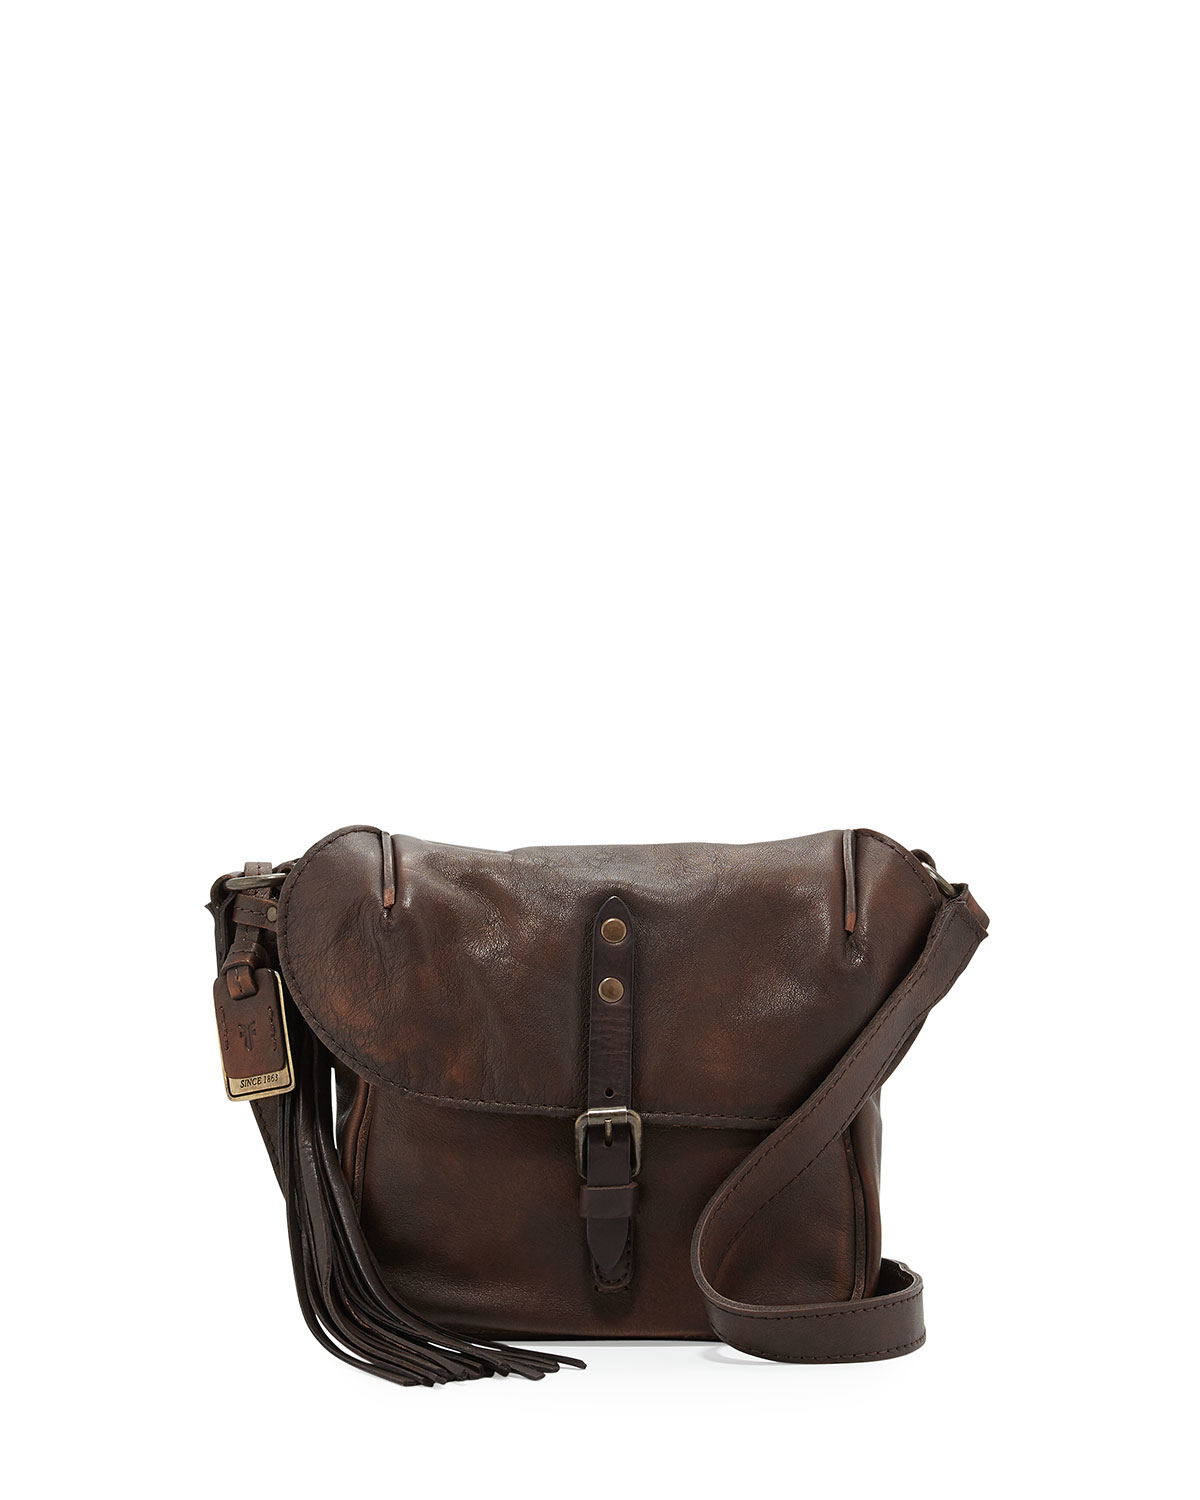 26528b4c977e Women's Brown Veronica Leather Crossbody Bag | Stanford Center for ...